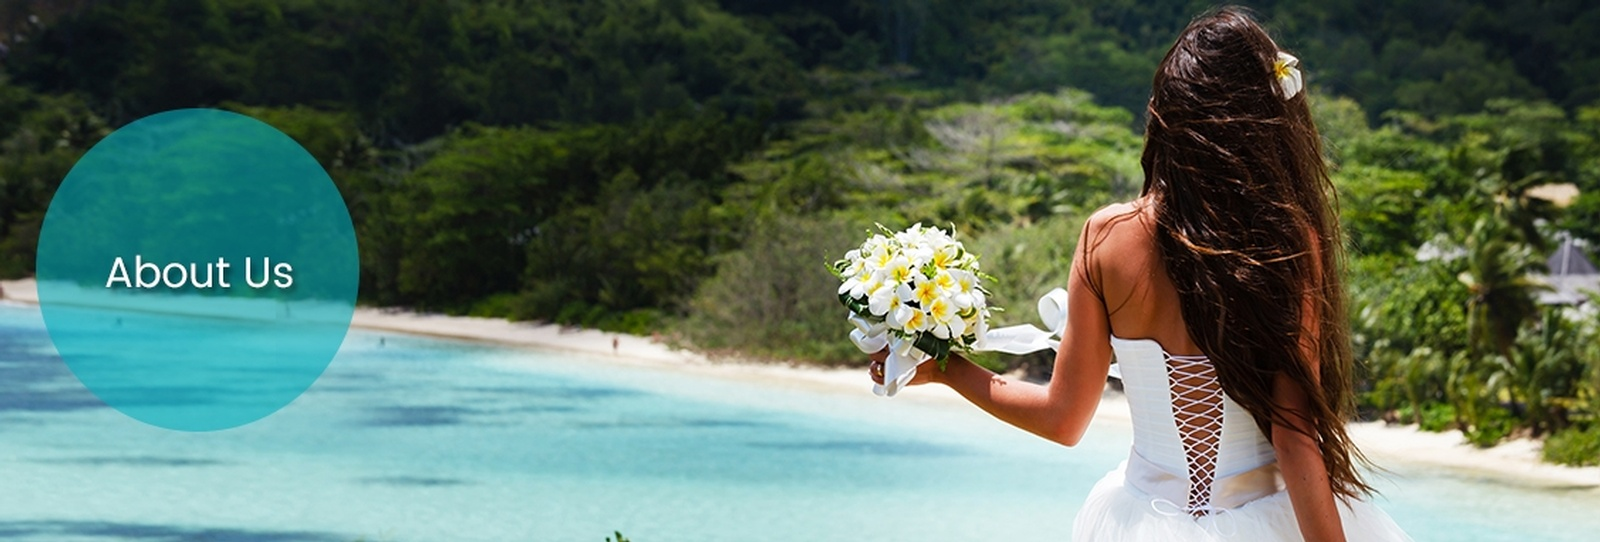 Wedding & Honeymoon Planning Company in Ontario, Canada